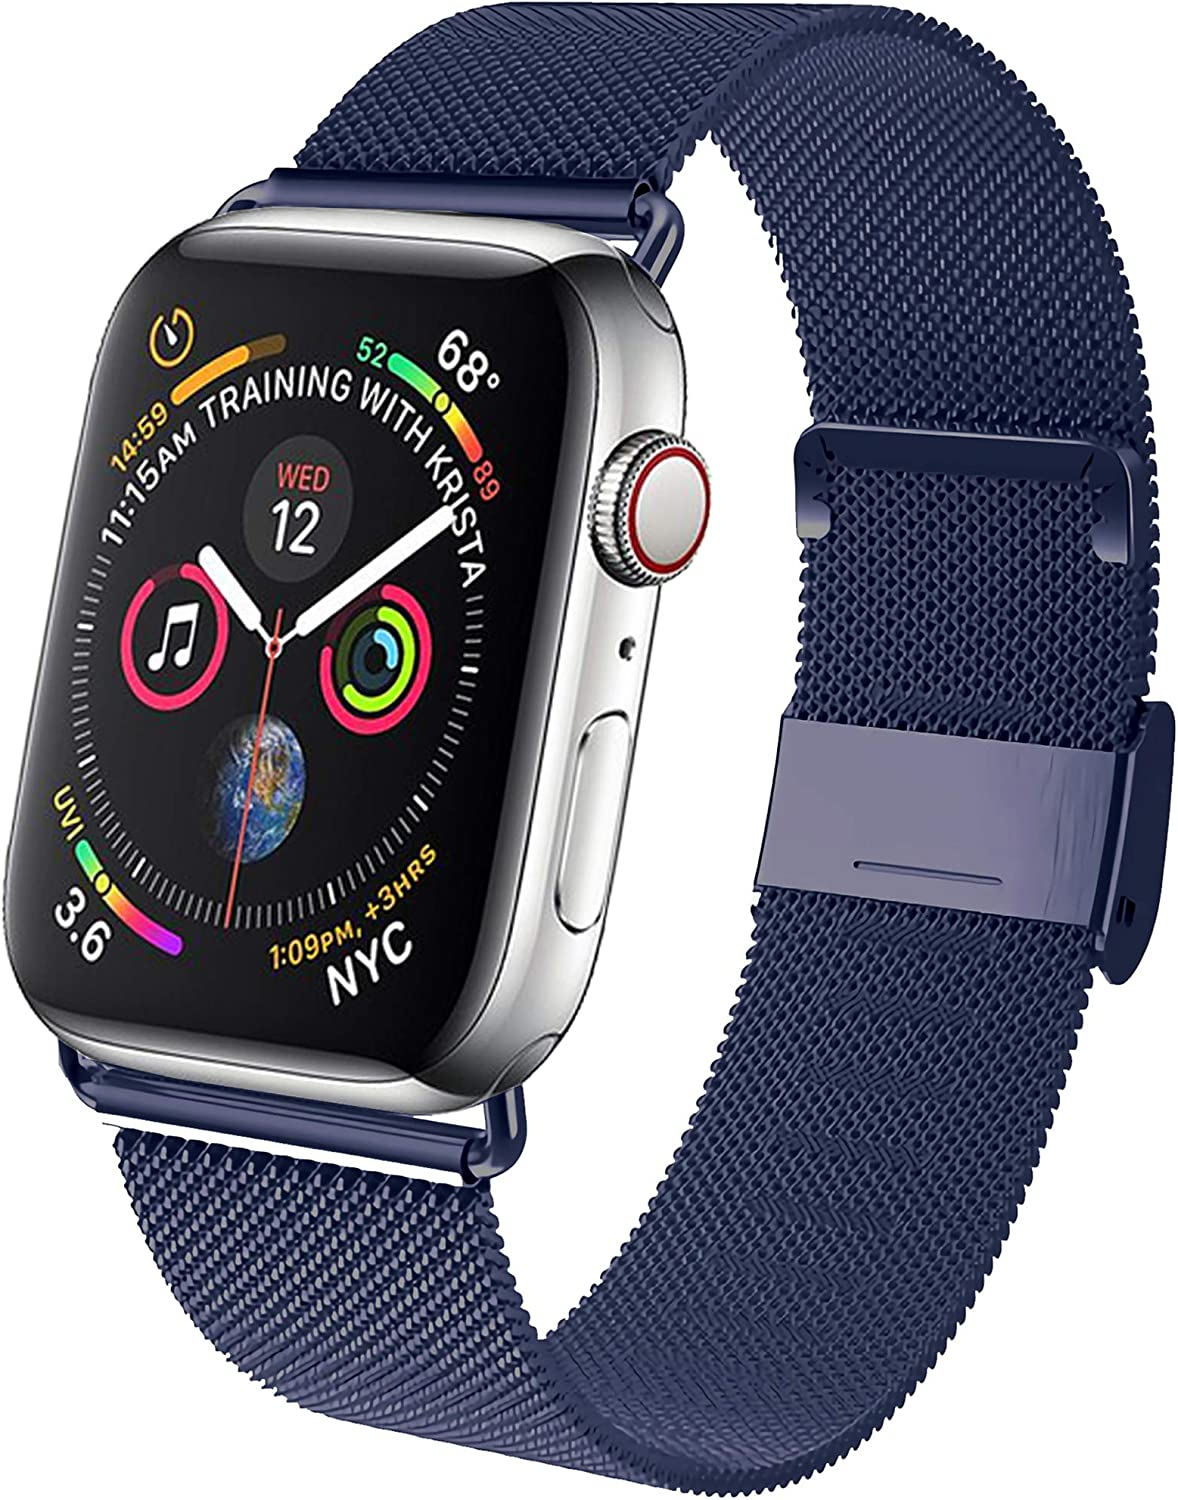 GBPOOT Band Compatible with Watch Band 38mm 40mm 42mm 44mm, Wristband Loop Replacement Band for Iwatch Series 6/SE/5/4/3/2/1,Midnight Blue,38/40mm